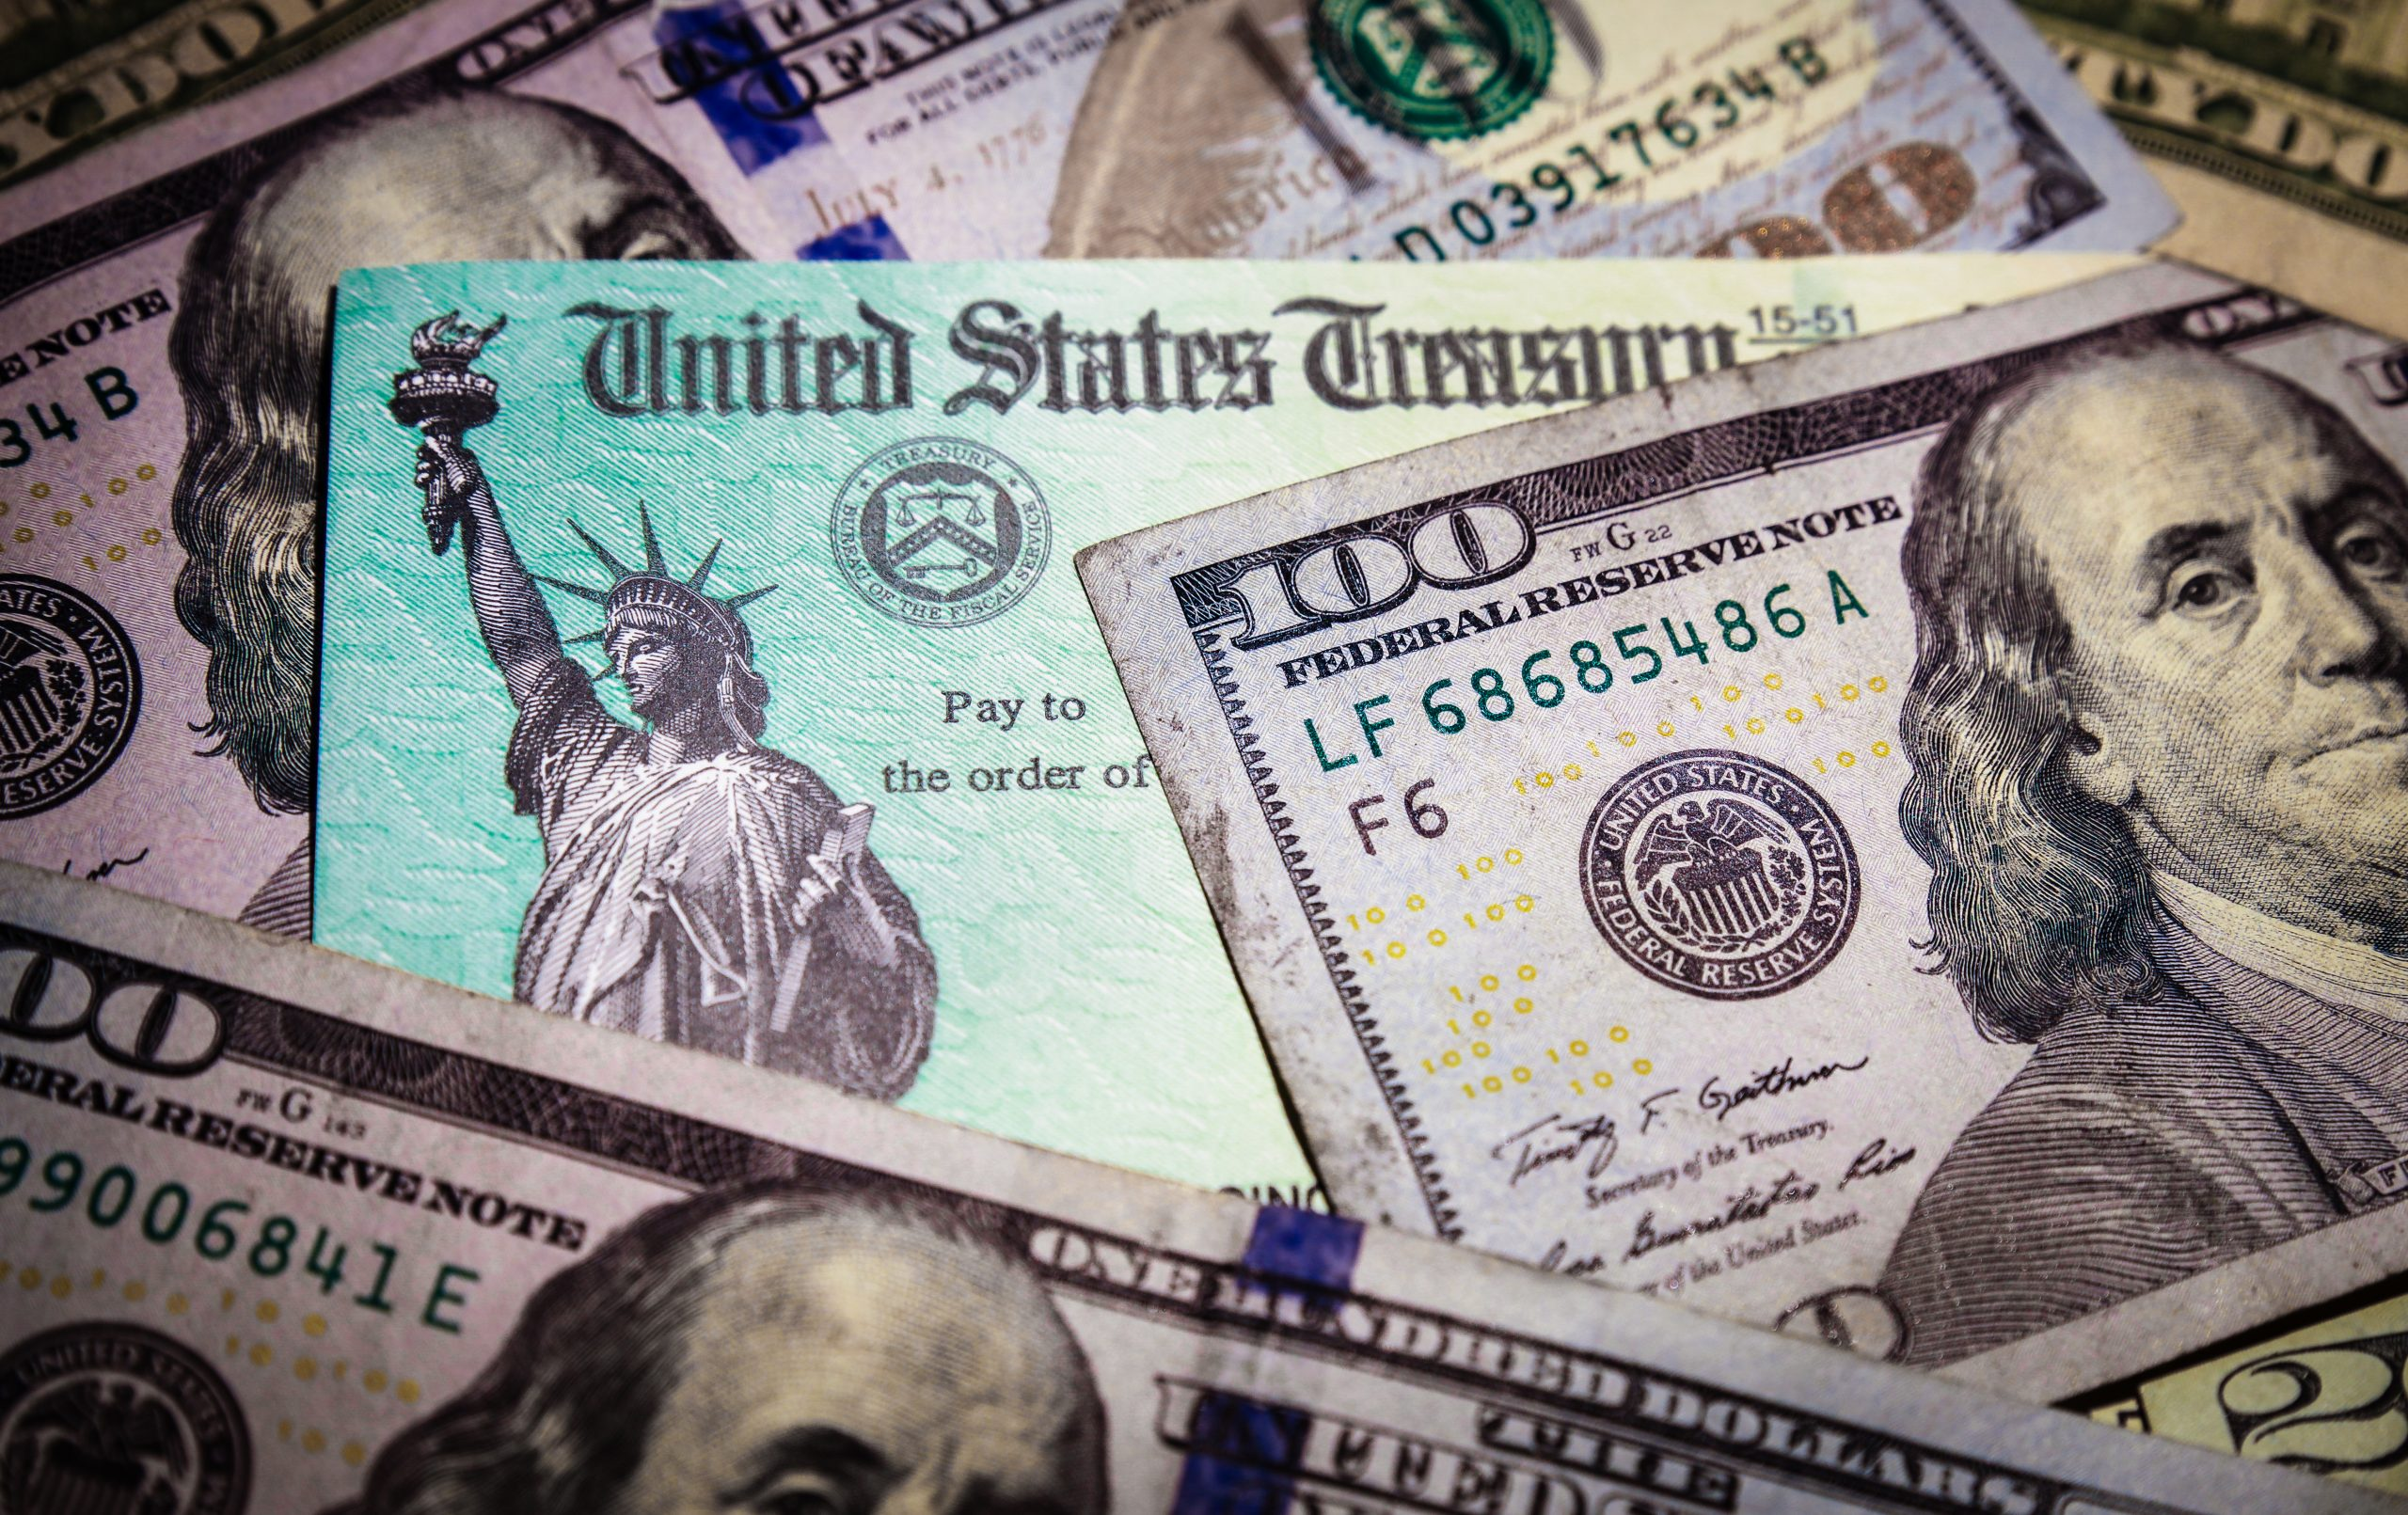 WASHINGTON DC - APRIL 2, 2020: United States Treasury check with US currency. Illustrates IRS tax refund or coronavirus economic relief package cash payments to taxpayers affected by the pandemic.